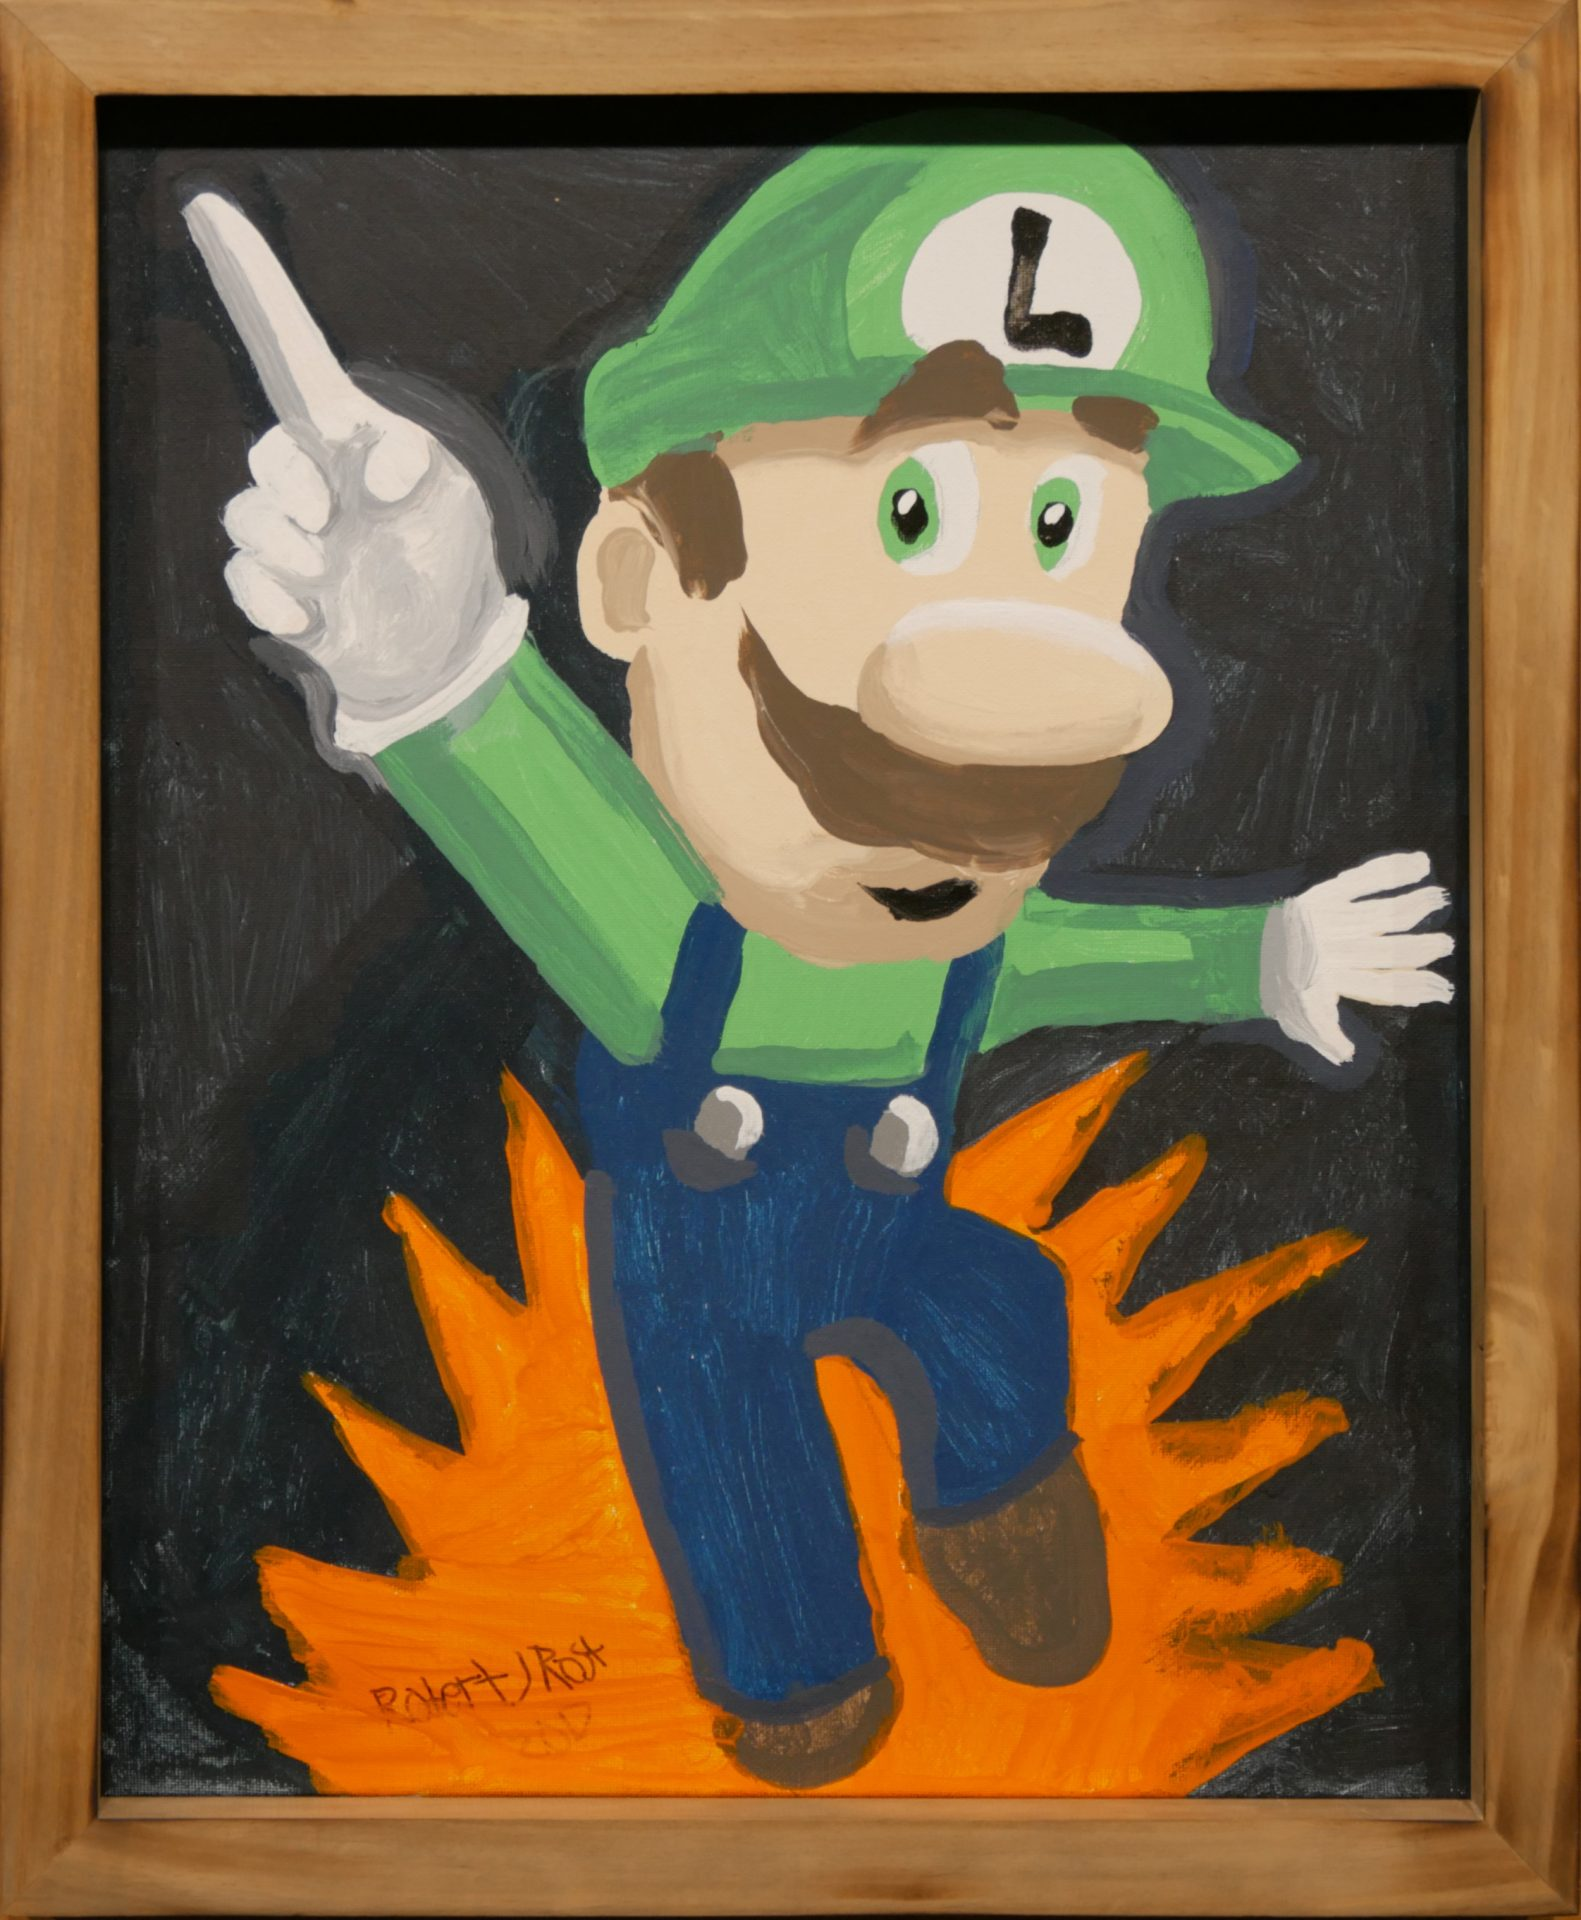 'And Luigi' by Robby Rost (acrylic on canvas)